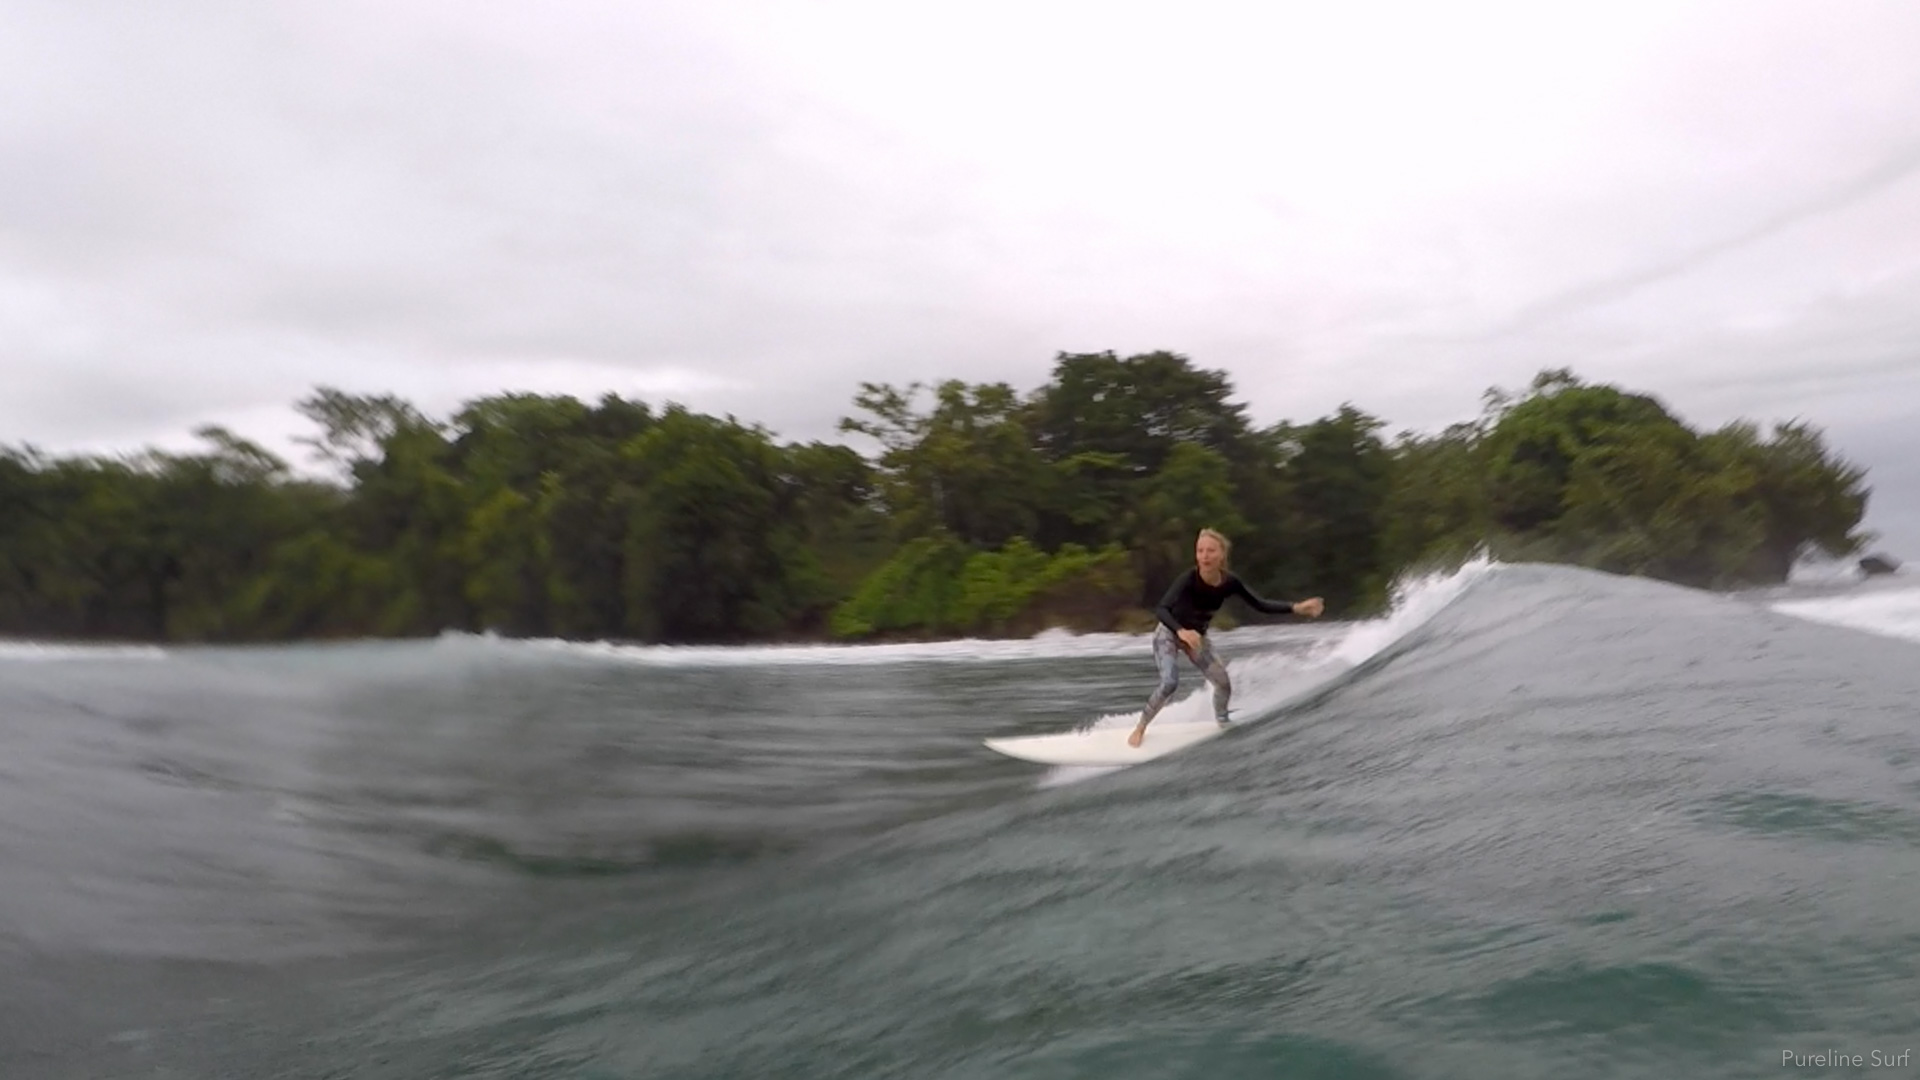 A Go Pro photo of a client surfing a perfect left over coral during a strike mission trip with Pureline Surf Coaching.